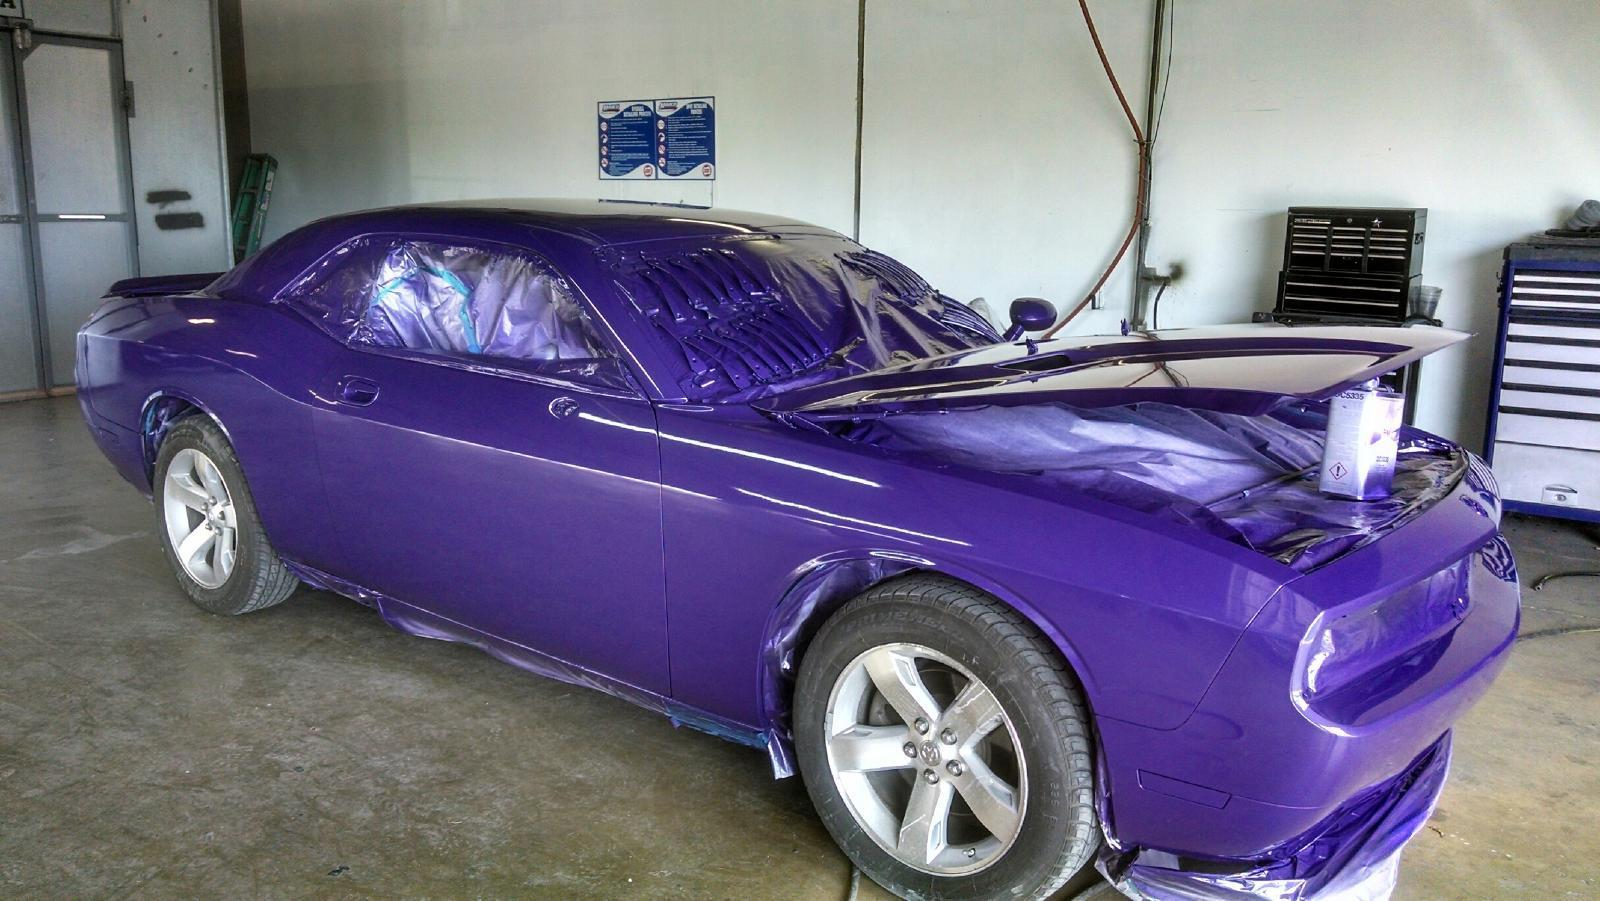 Maaco collision repair auto painting in lancaster tx for Maaco paint and body